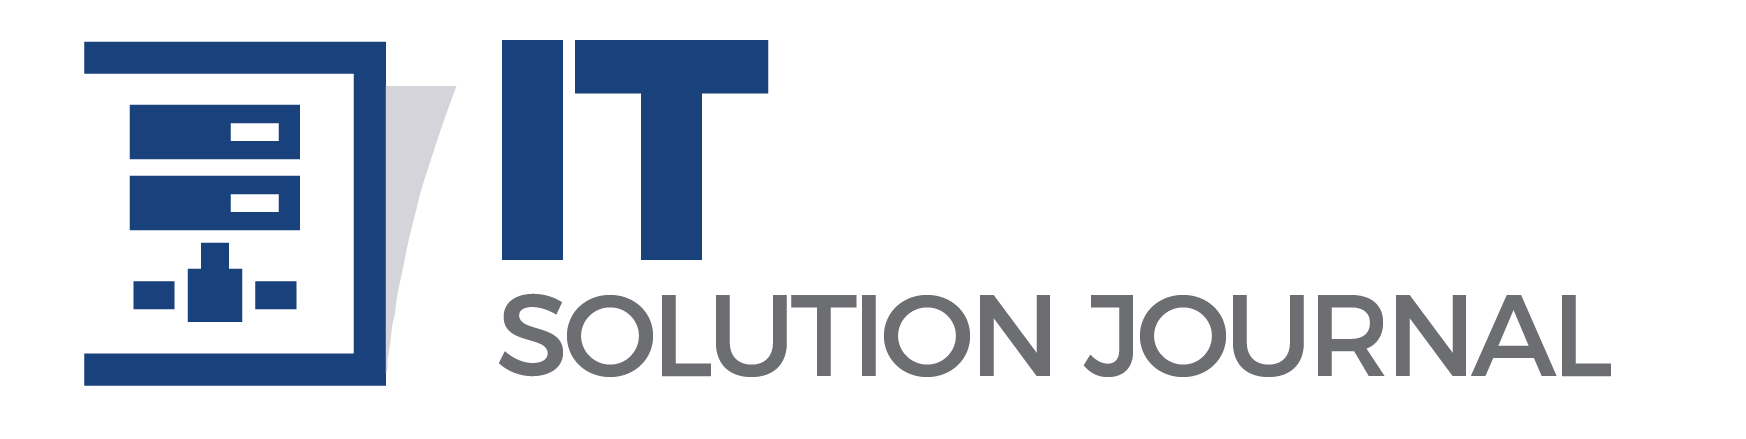 IT Solution Journal